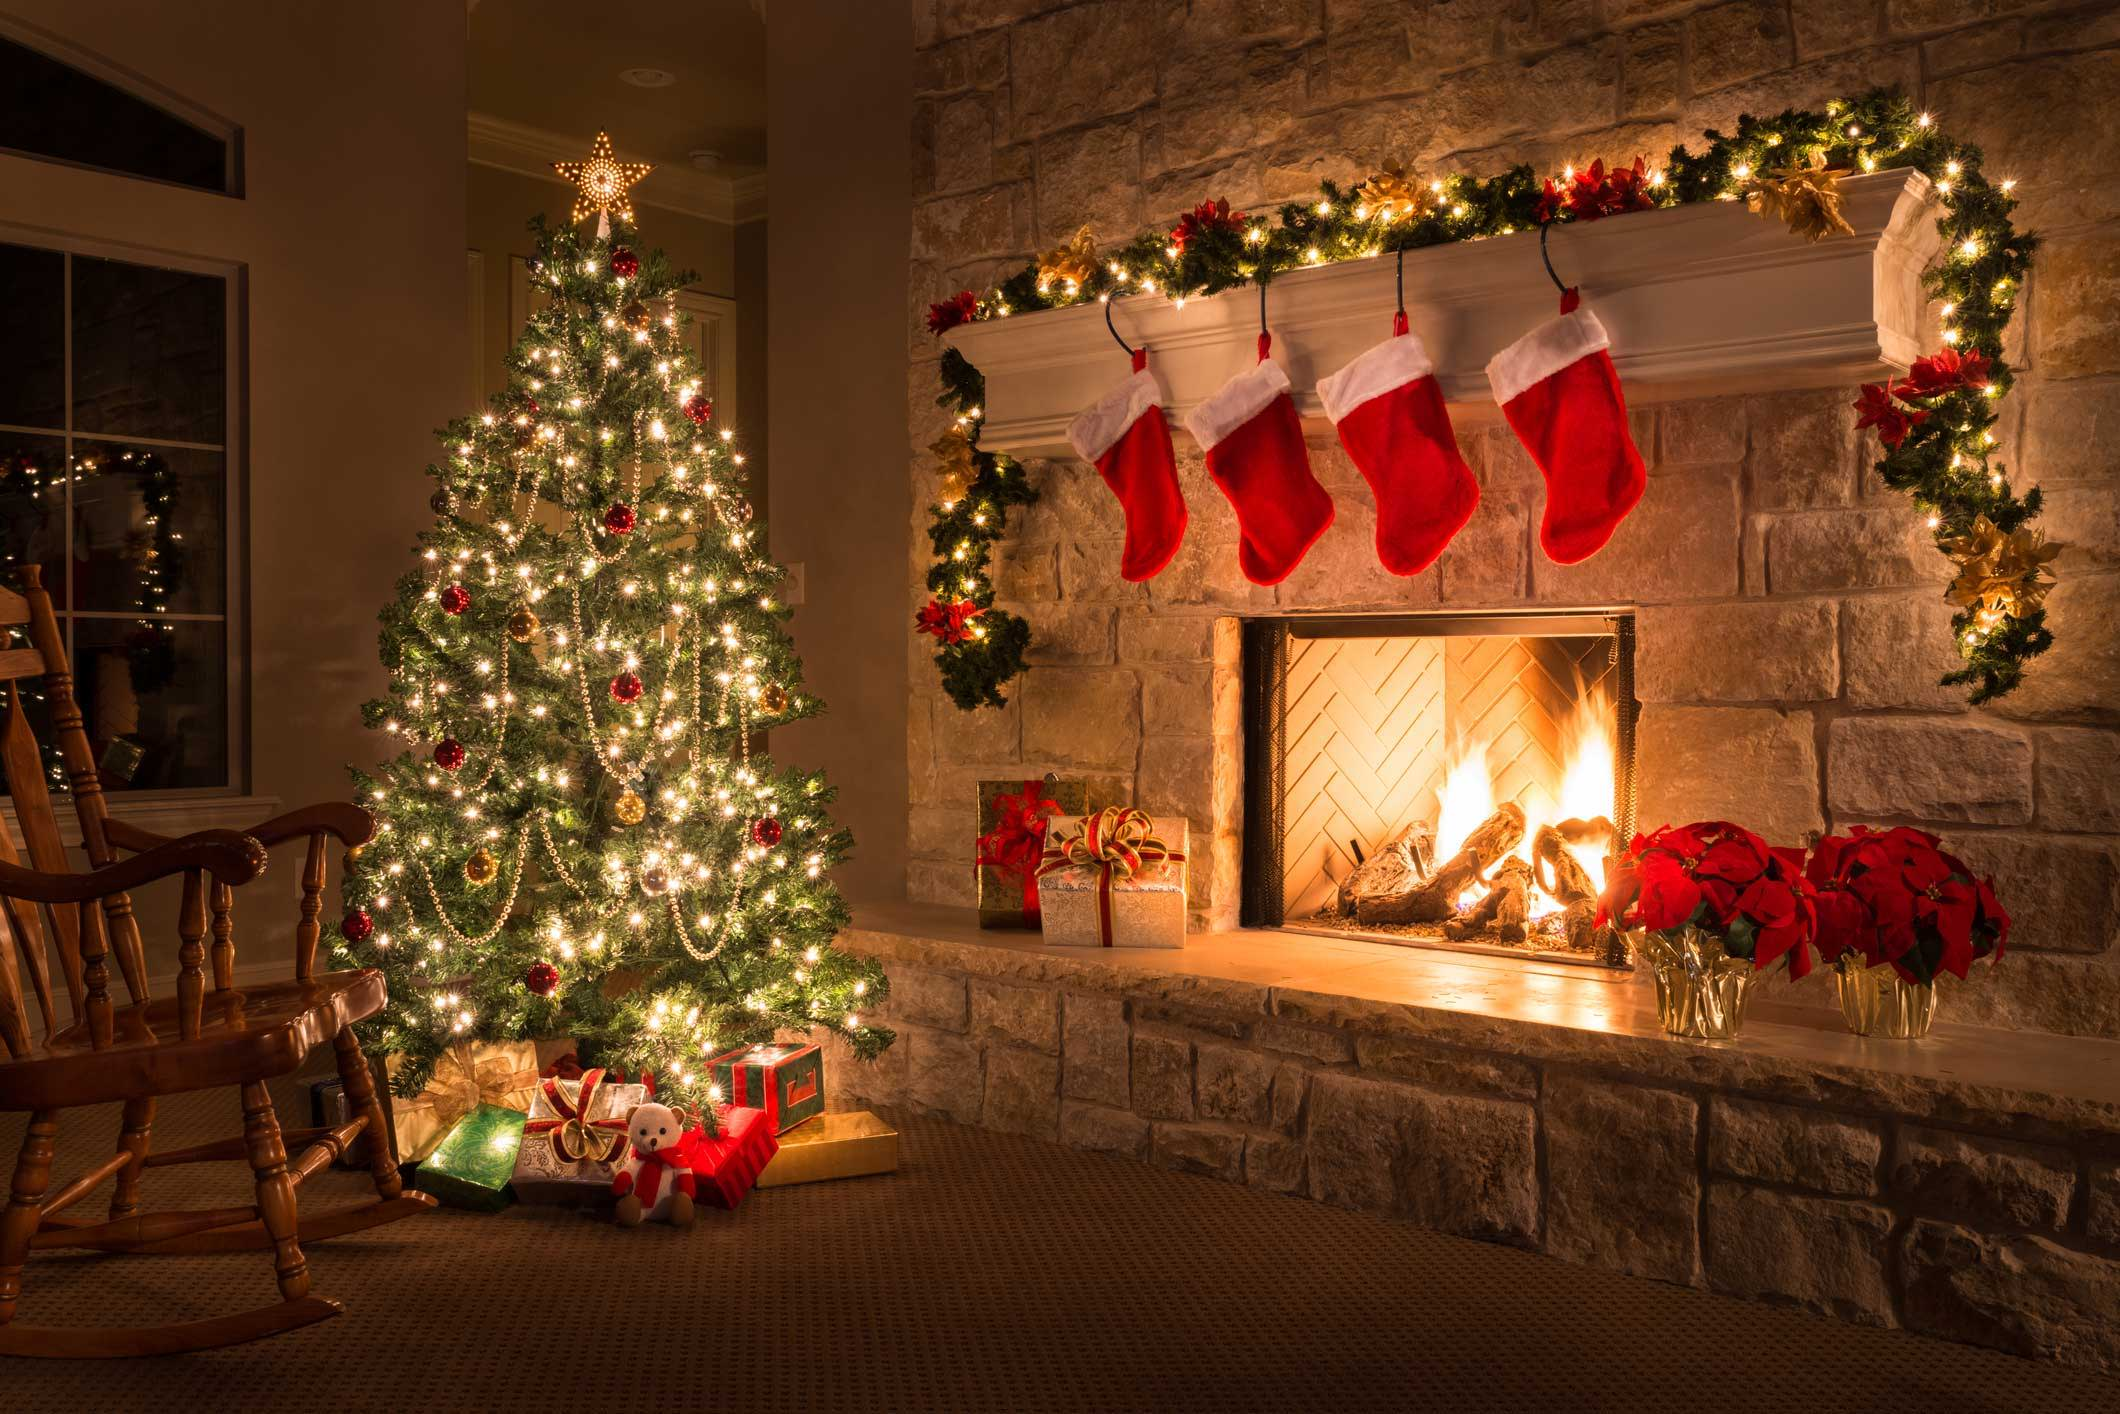 Christmas Fire Place Images.Holiday Fireplace And Chimney Safety Barnhill Chimney